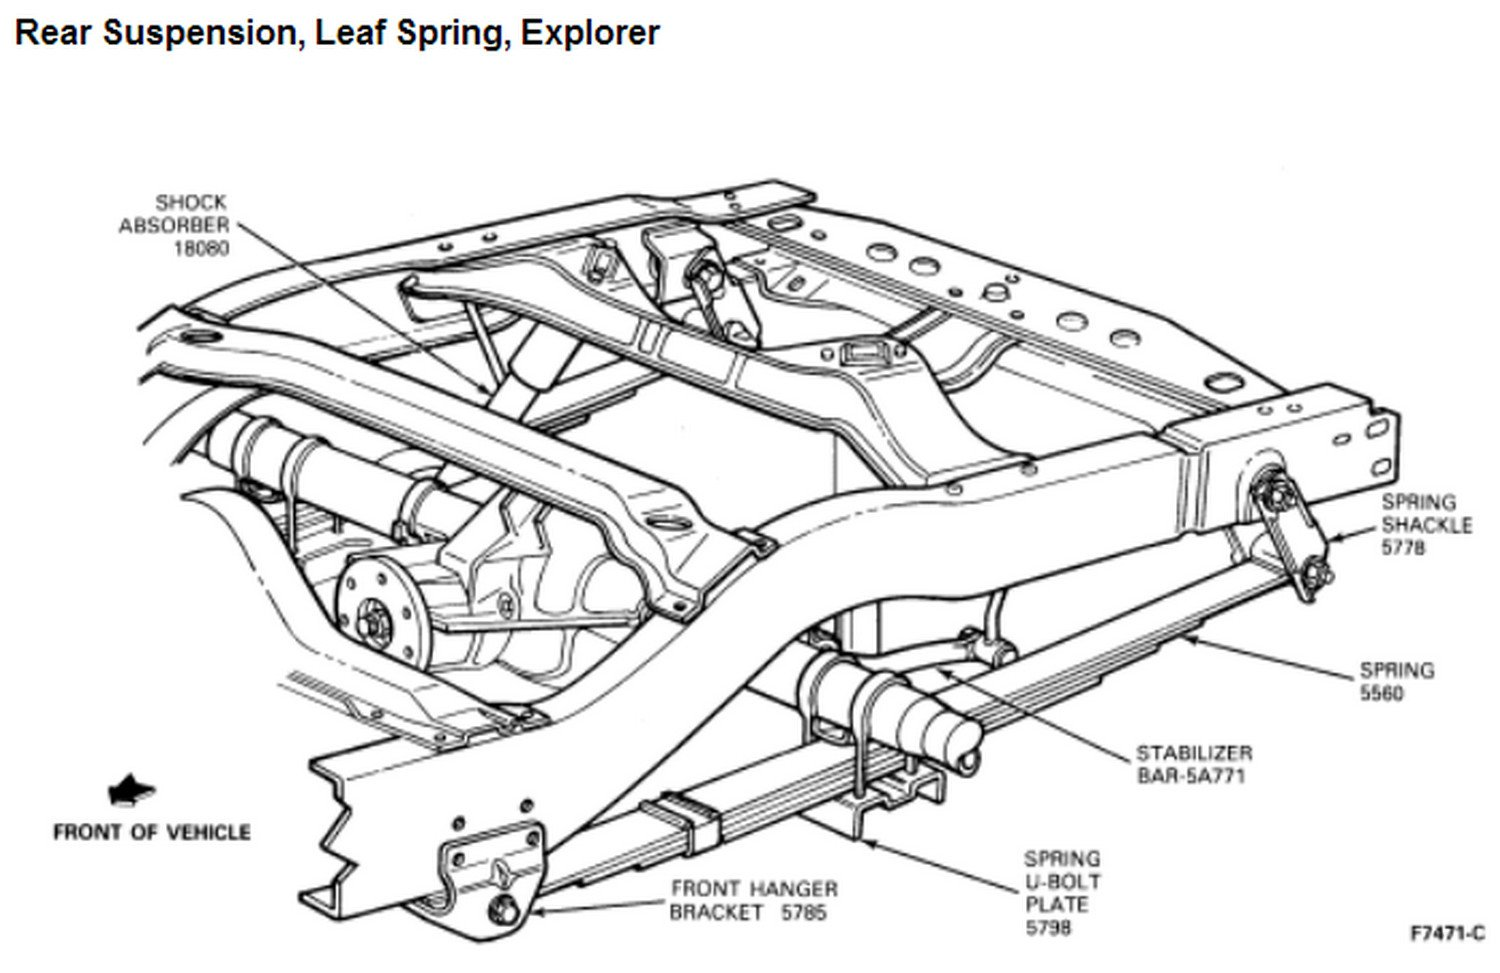 How Much Would It Cost To Replace The Rear Spring Mounts On A 1993 Ford Explorer  This Is The